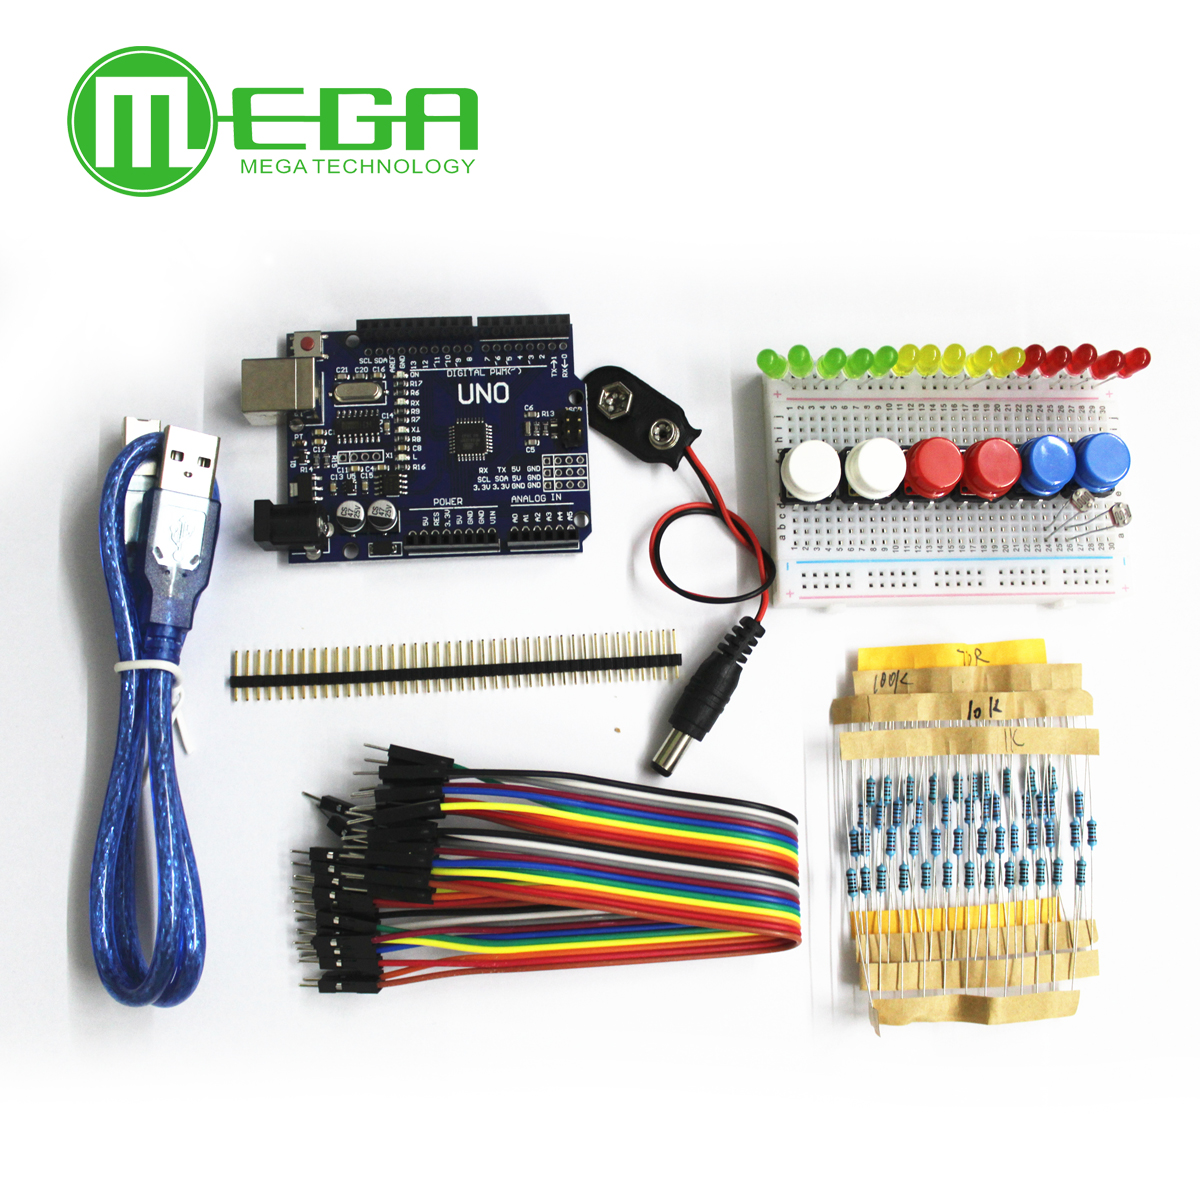 Smart Electronics Starter Kit For Arduino Uno R3 Mini Breadboard Led Jumper Wire Button Moderate Price Electronic Components & Supplies